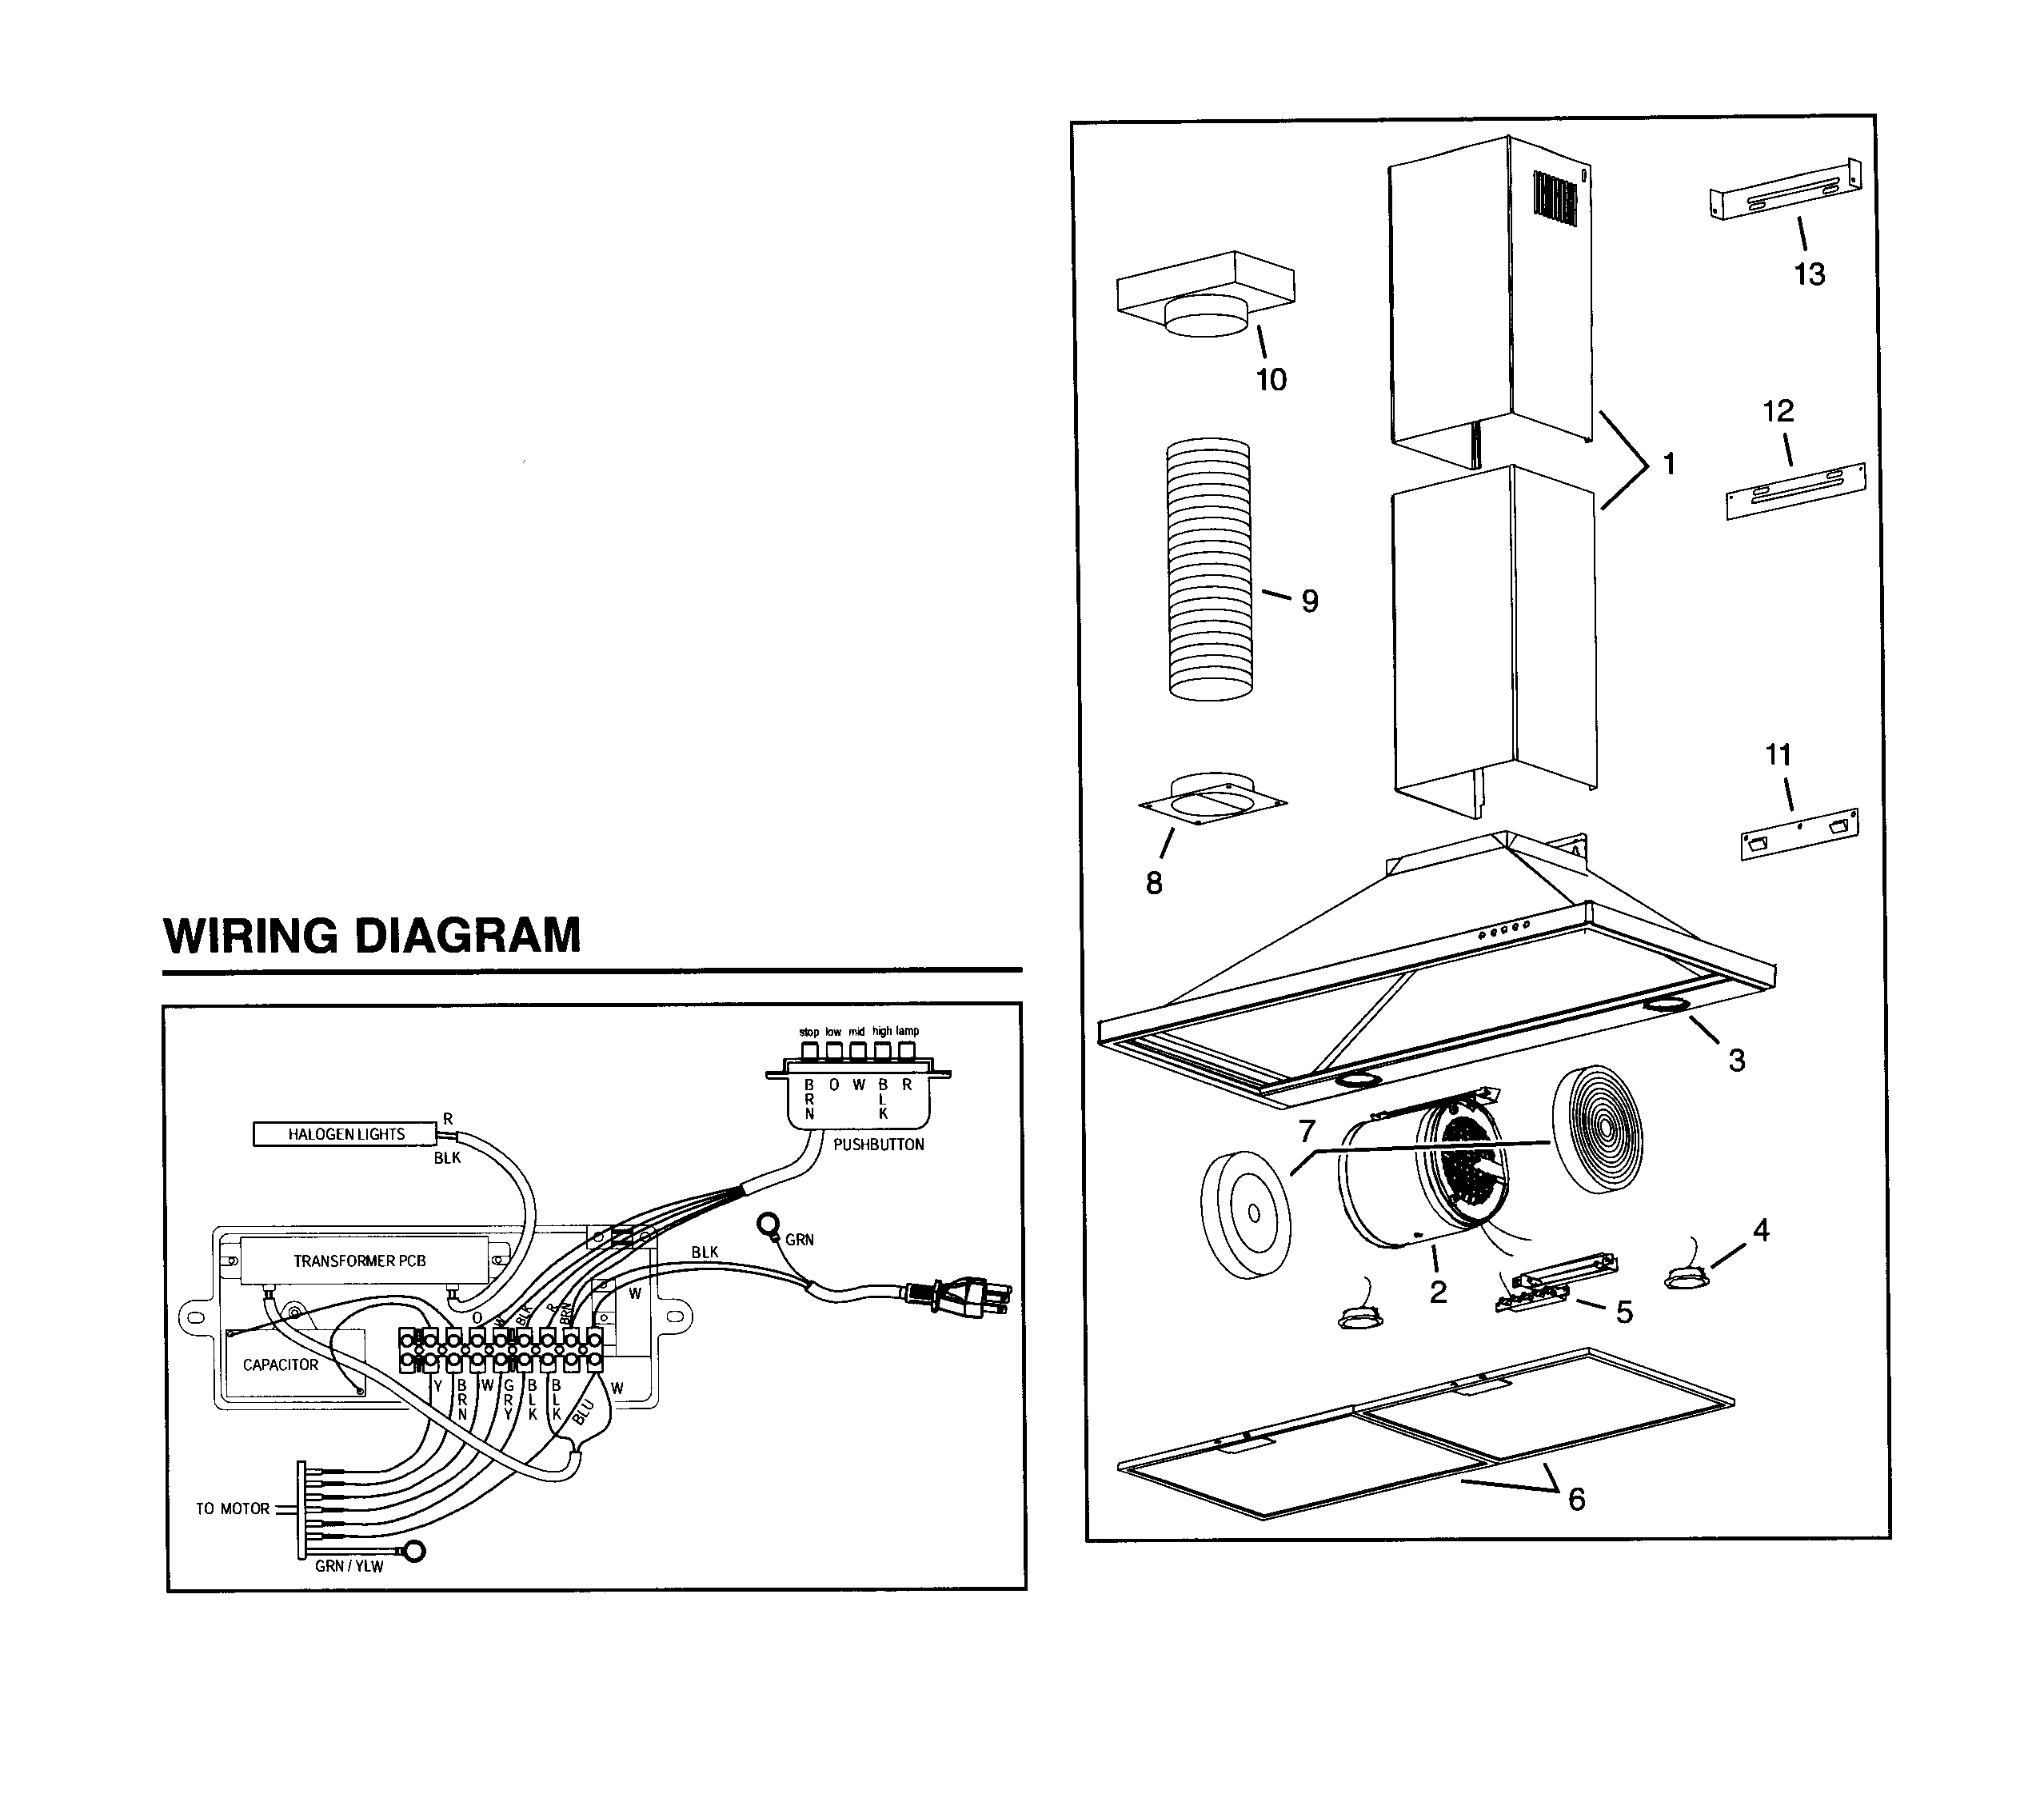 diagrams wiring   s2 access control wiring diagram